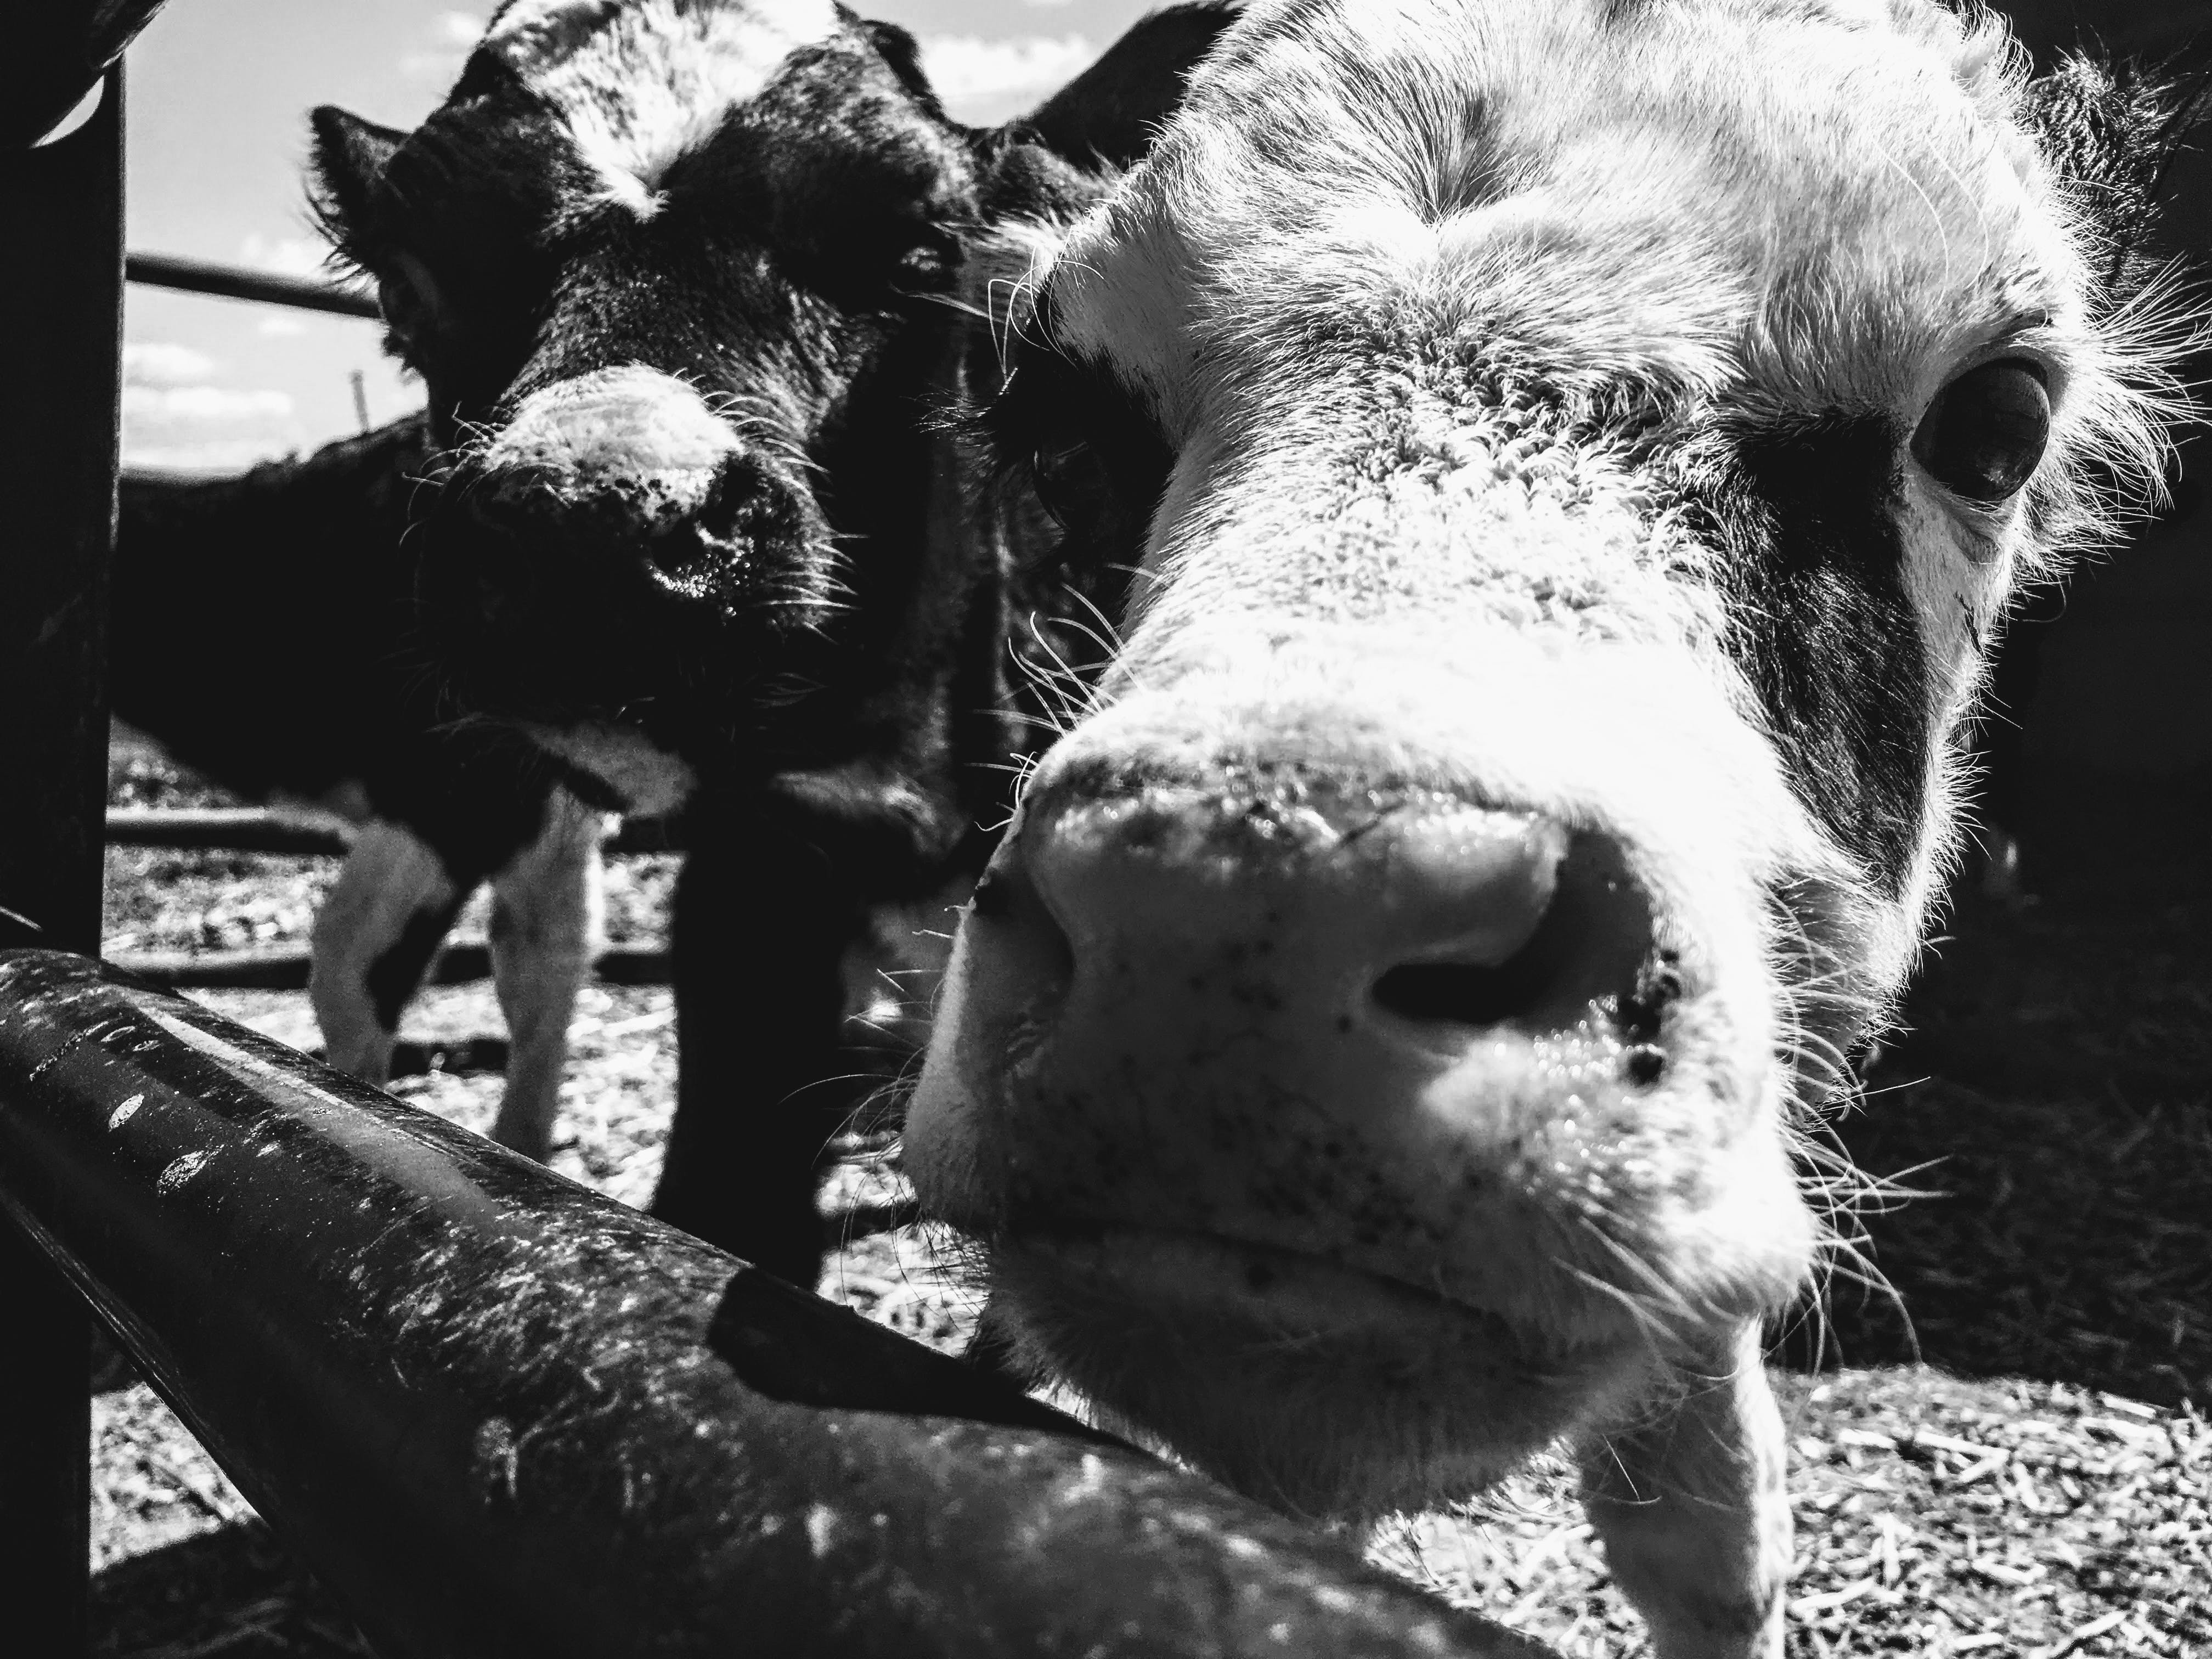 Grayscale Photograph of Two Cows